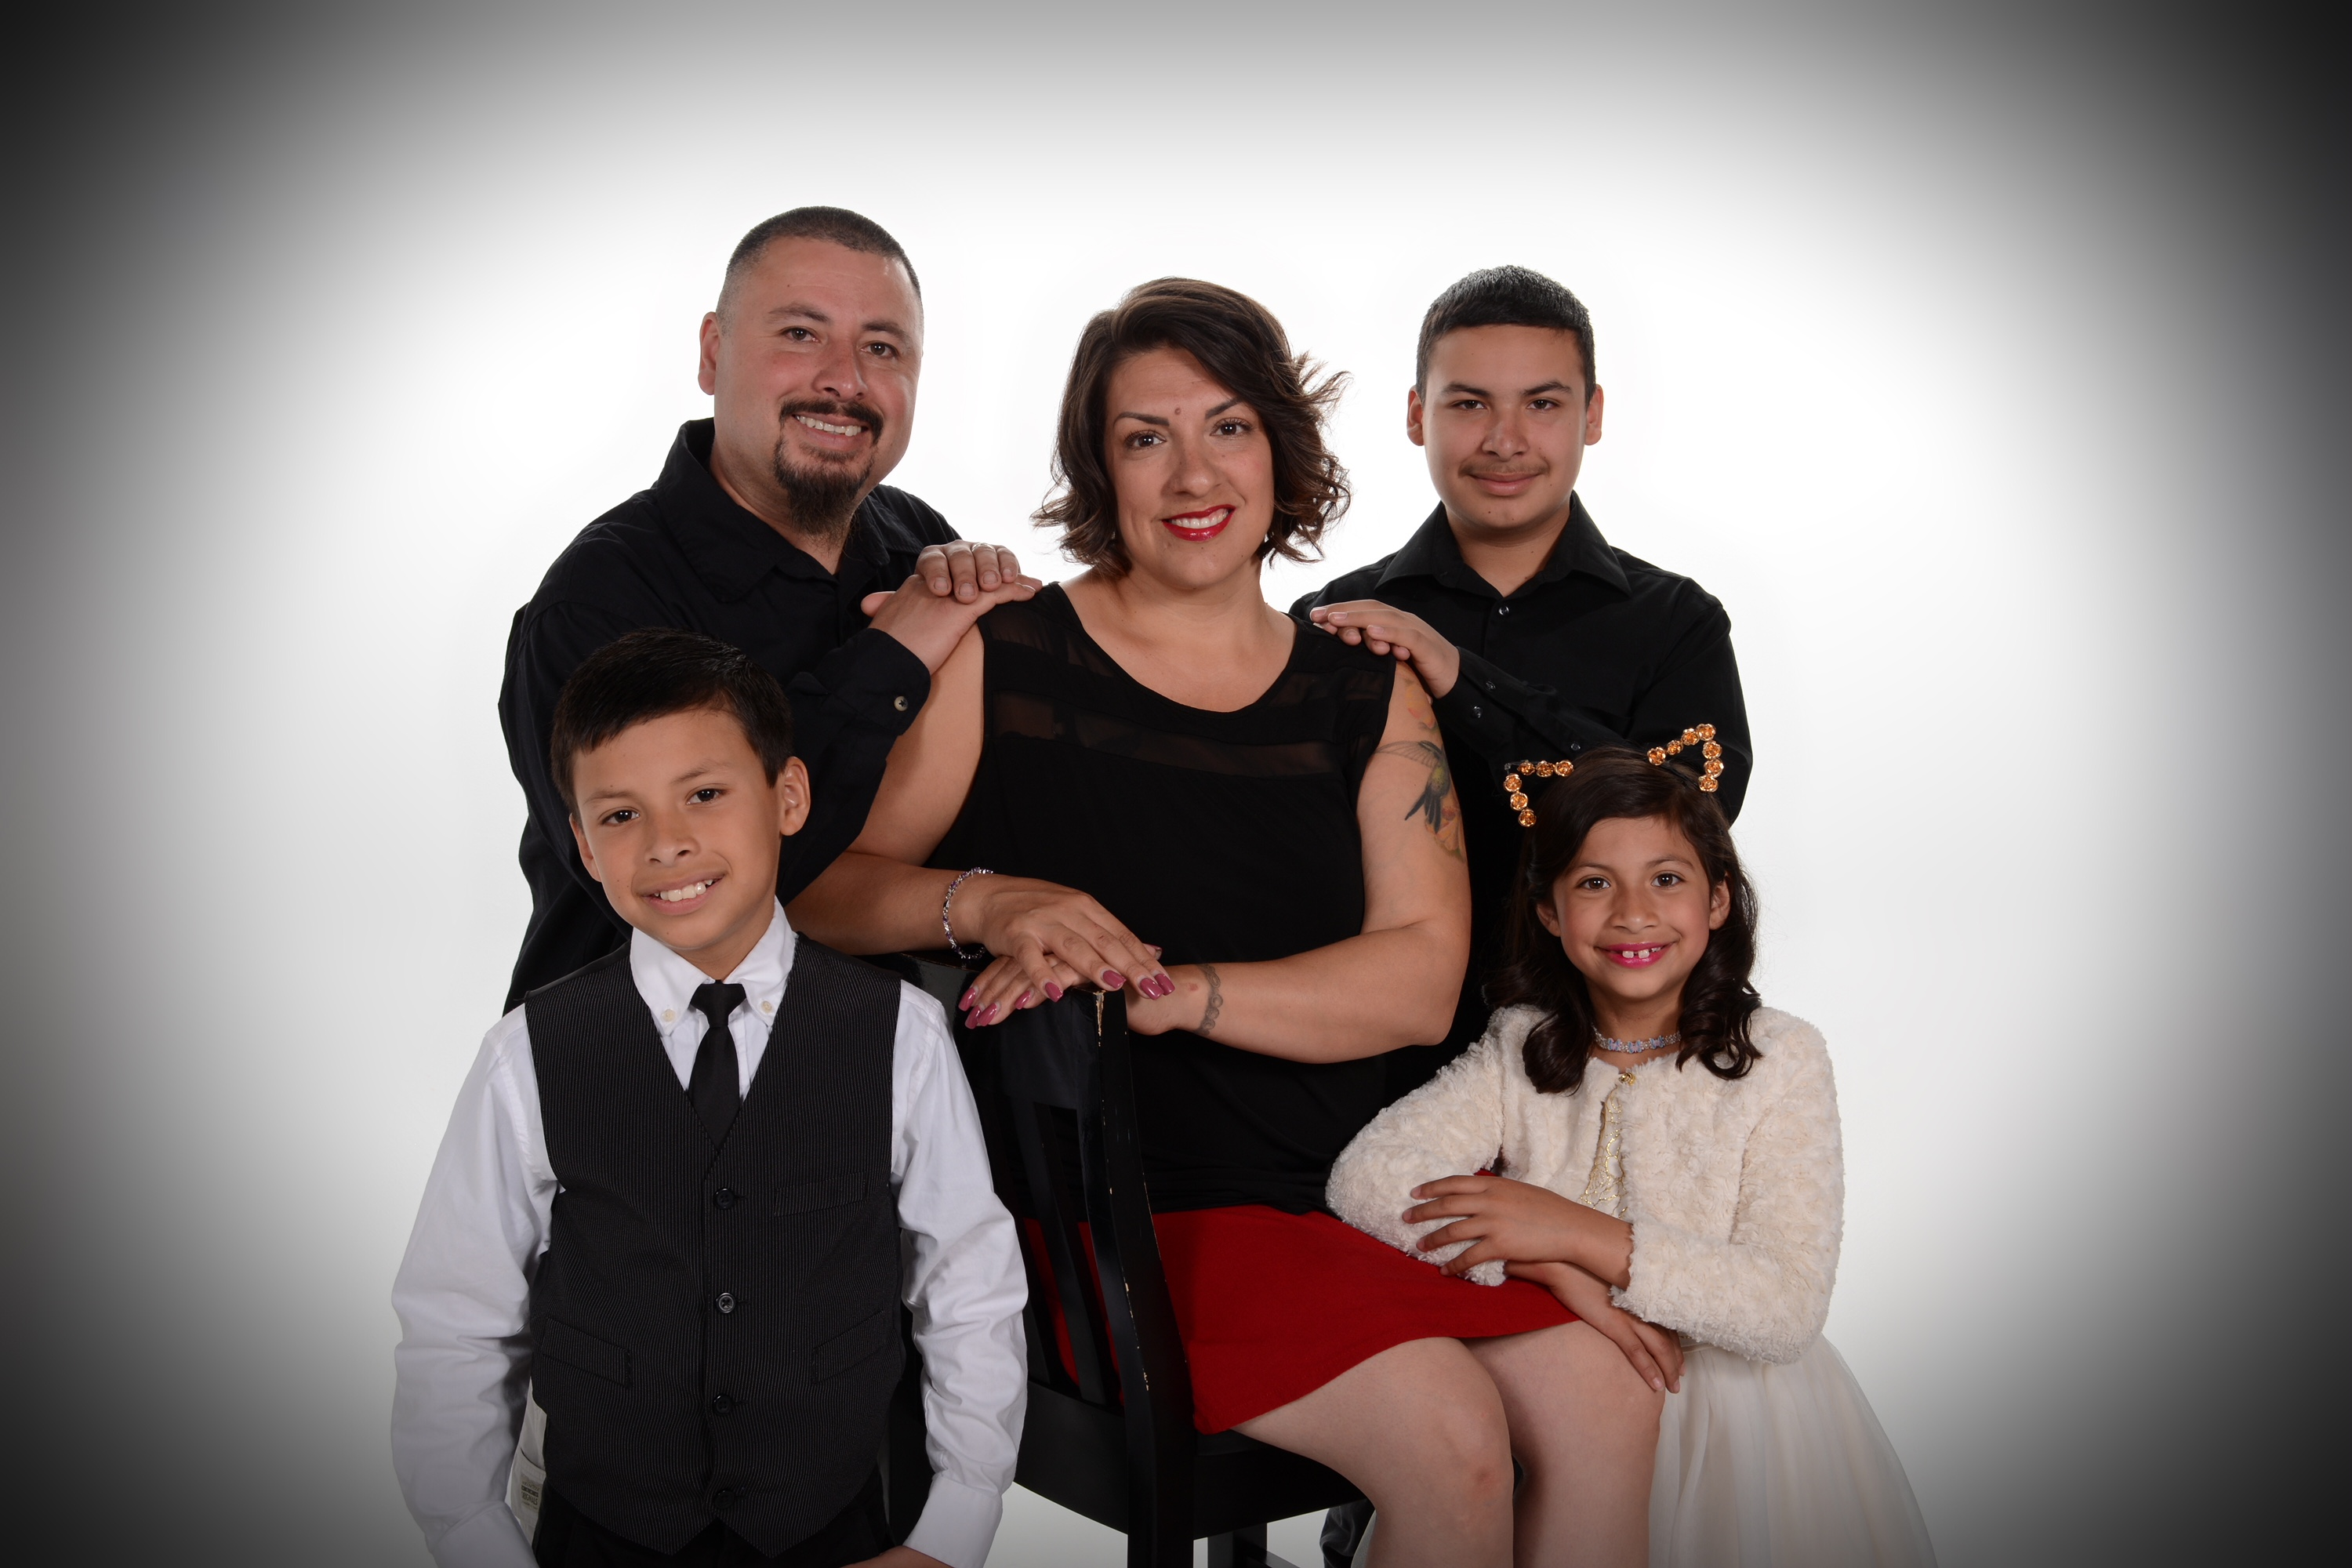 large family poses for professional portrait by Andrea Michaels in Colorado Springs